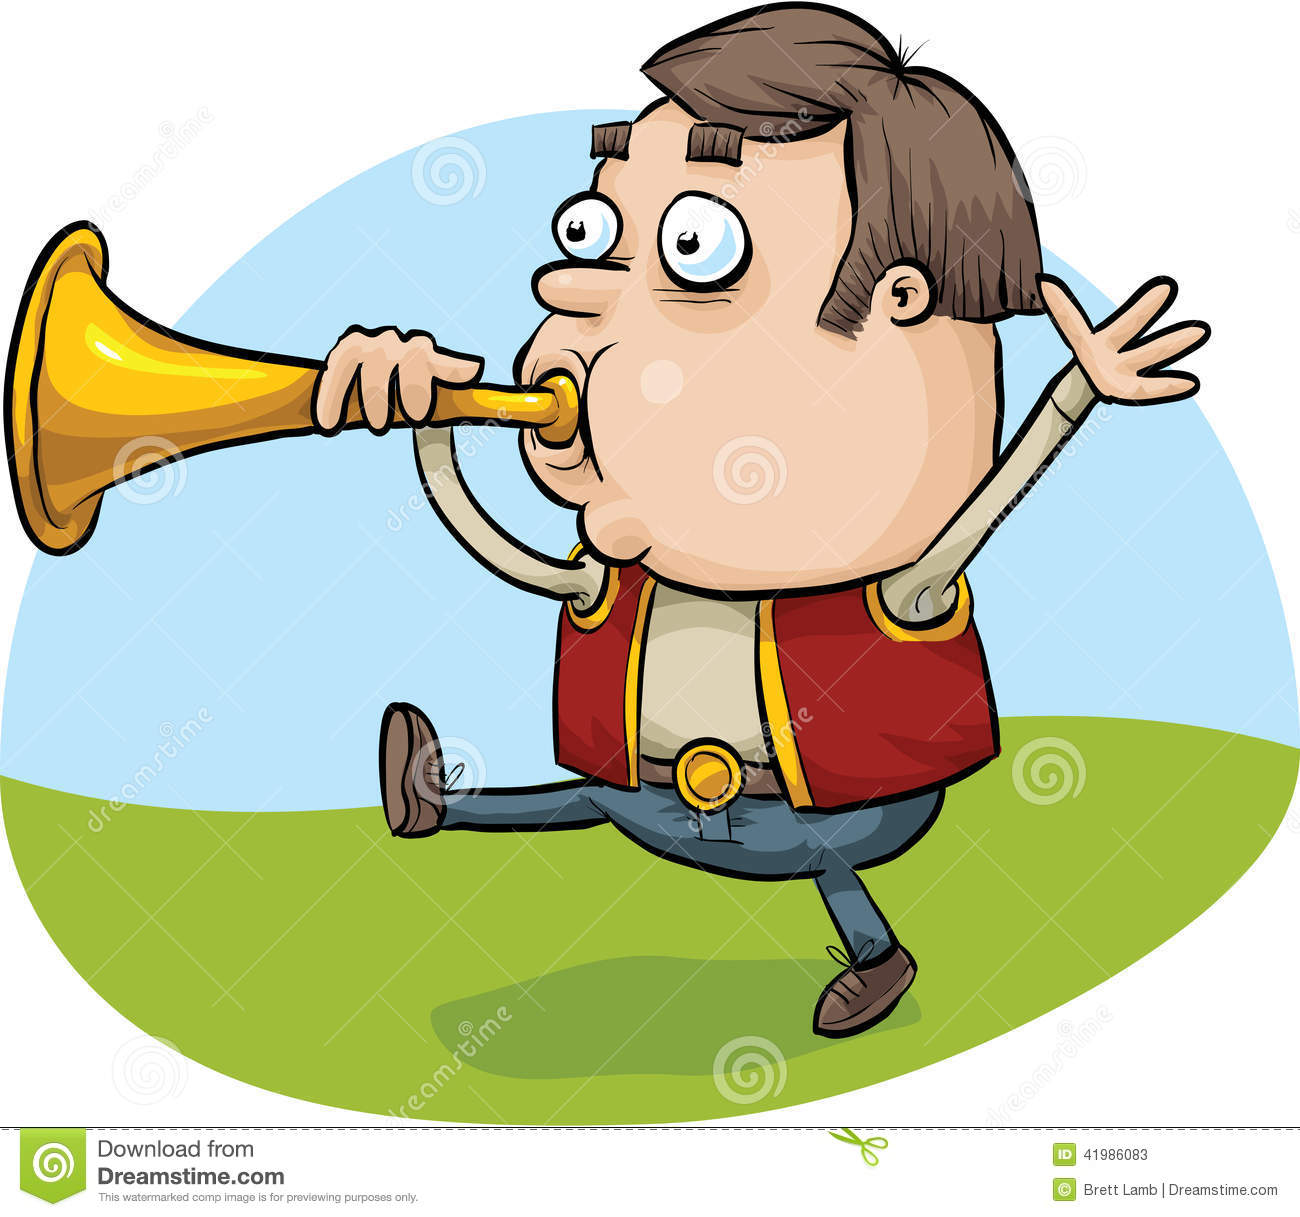 Horn Blowing Man Stock Illustration - Image: 41986083